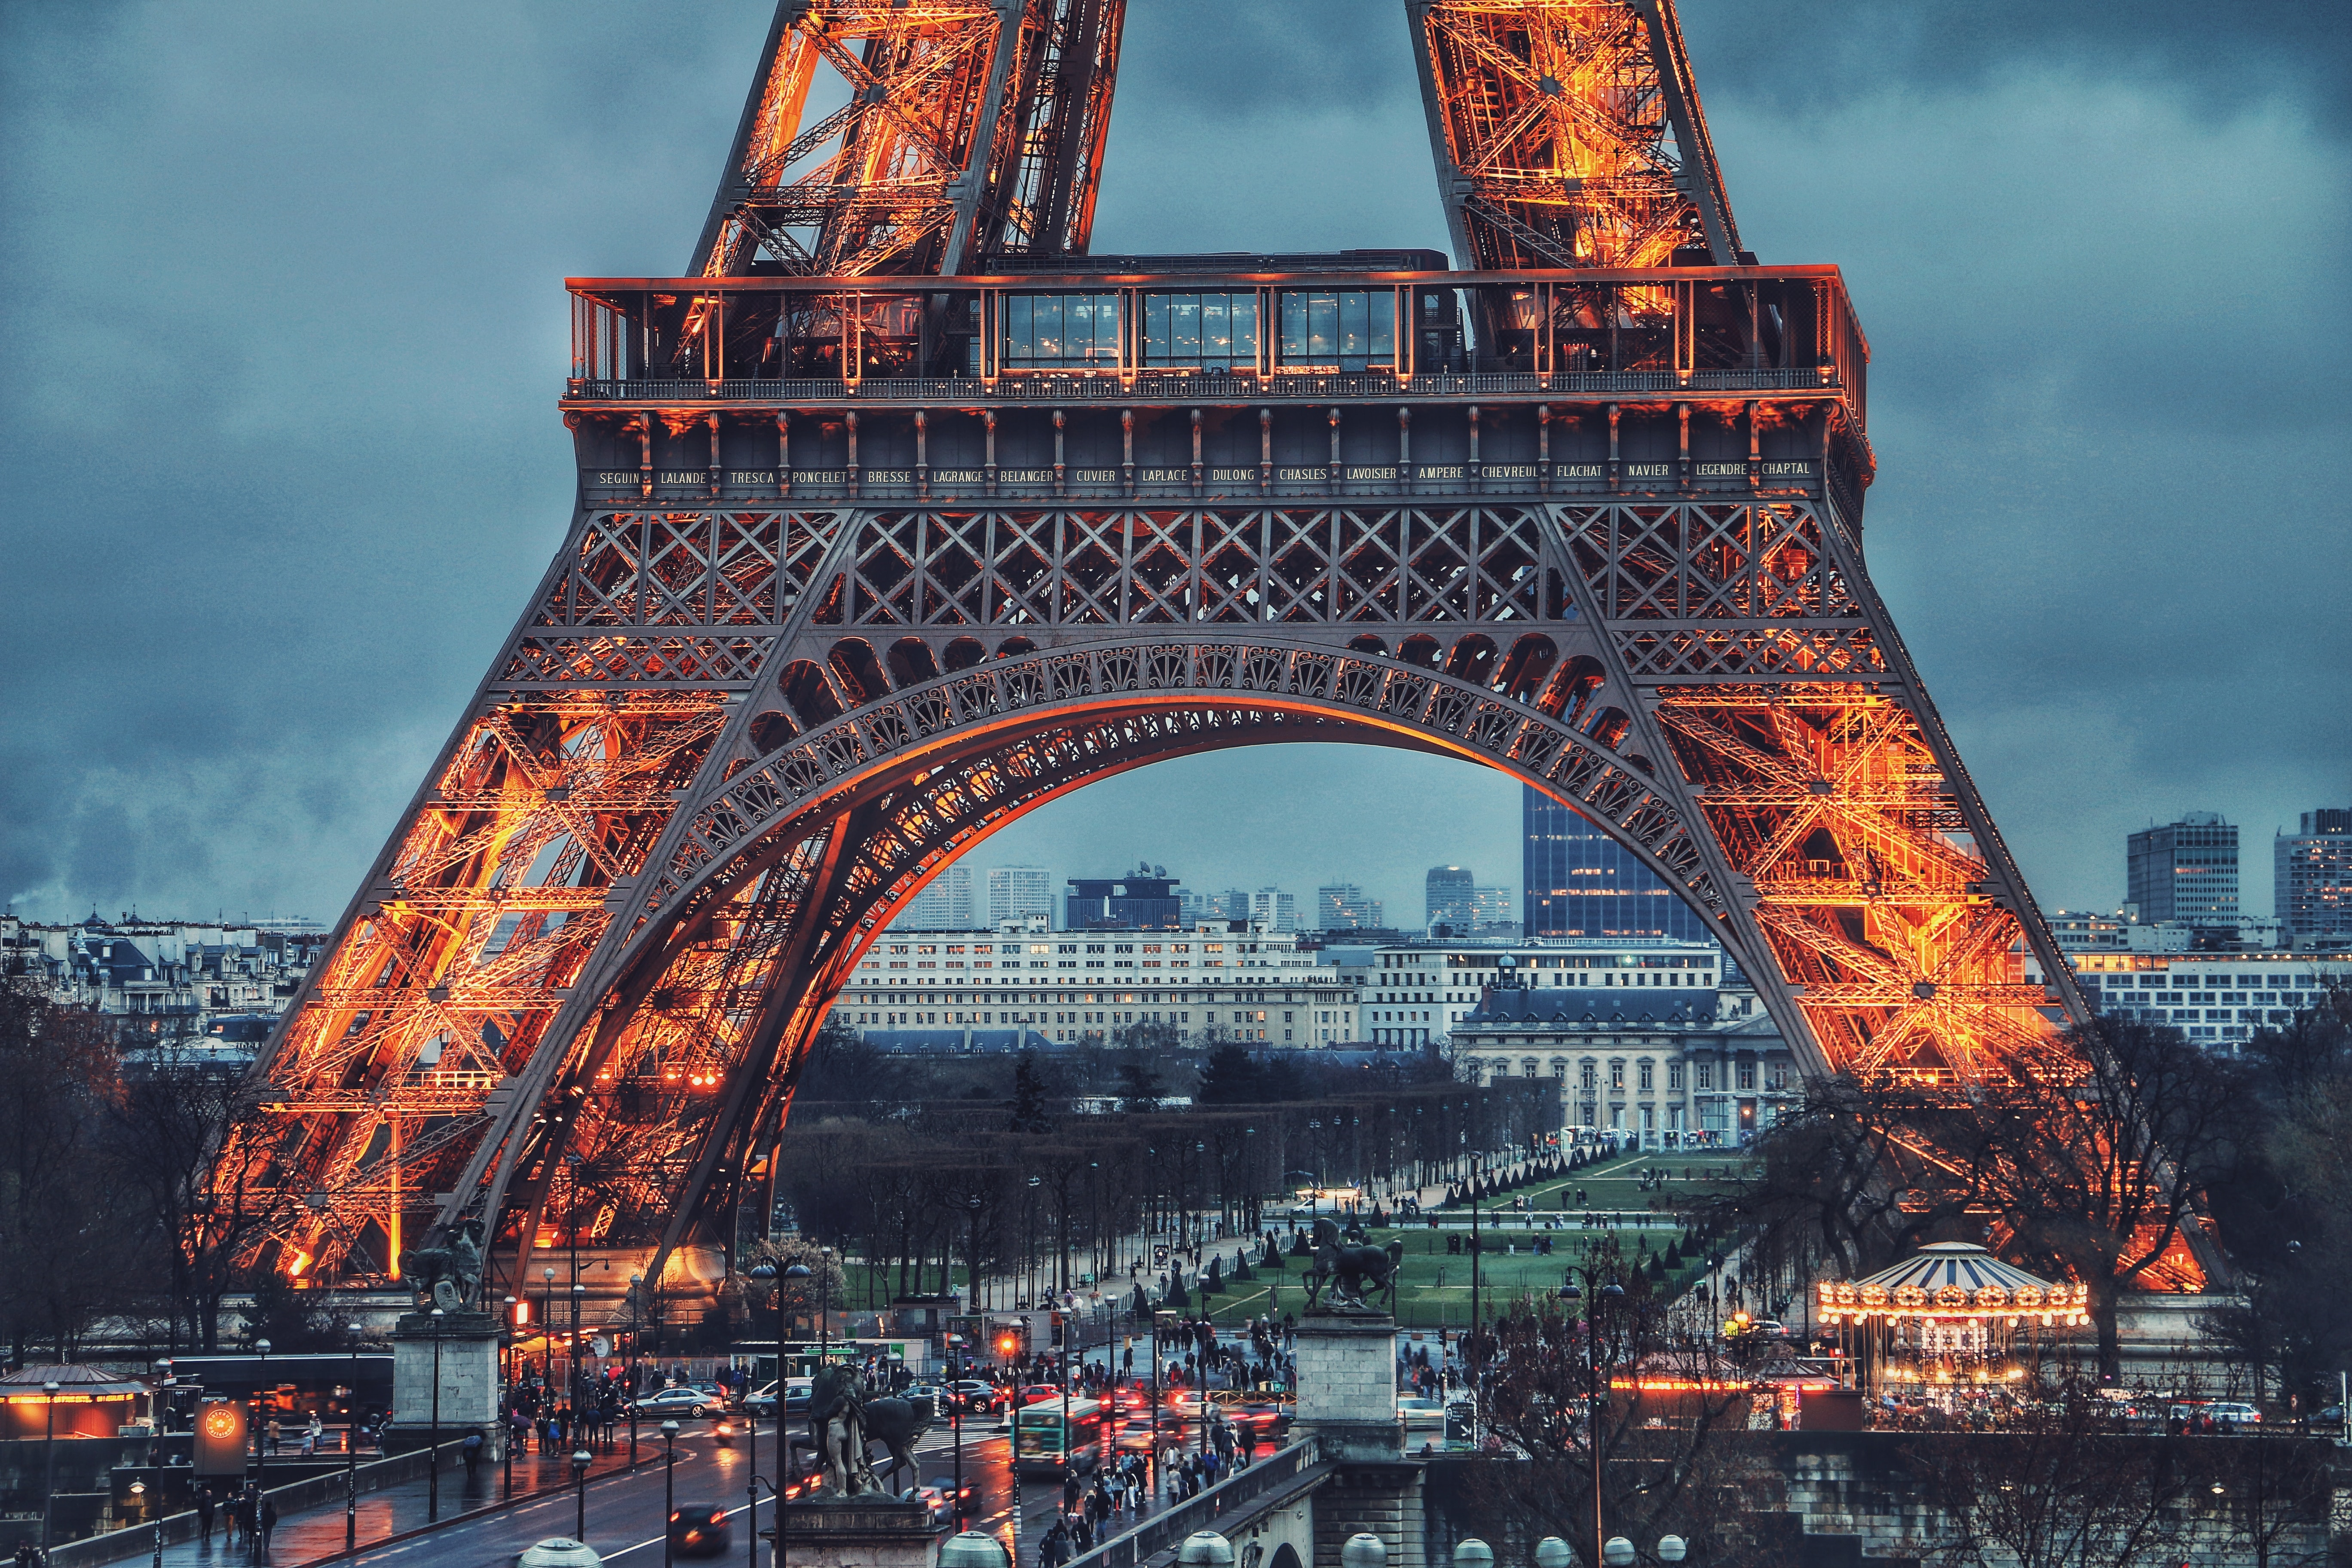 750+ Europe Pictures [Scenic Travel Photos]  Download Free